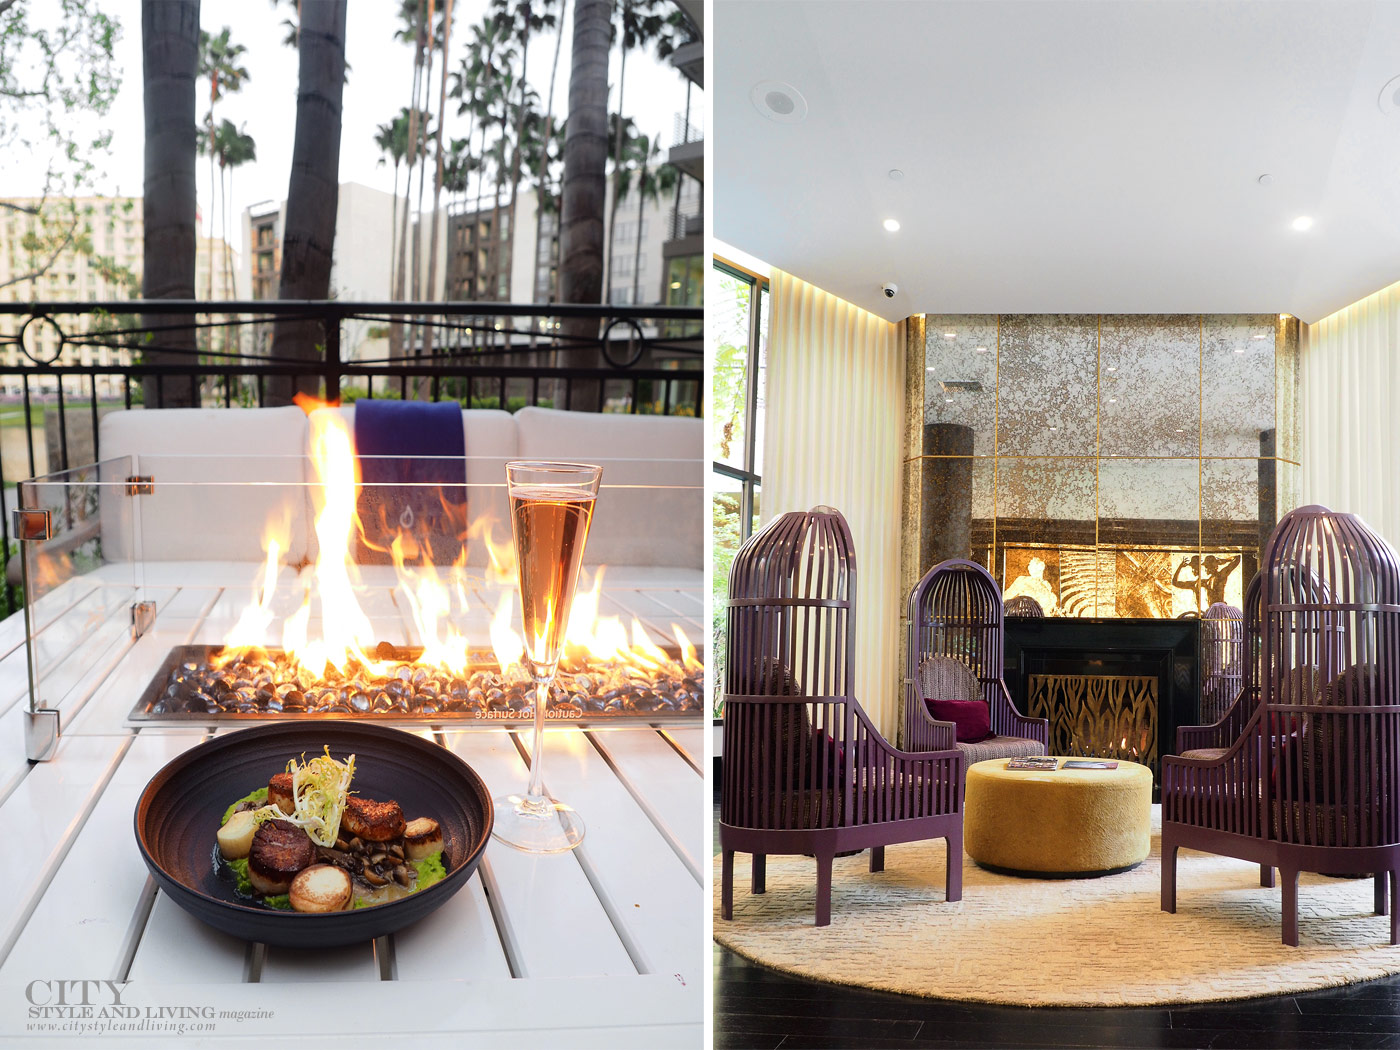 City Style and Living Magazine Summer 2019 Hotels Avenue of the Arts Costa Mesa silver trumpet patio and inside decor